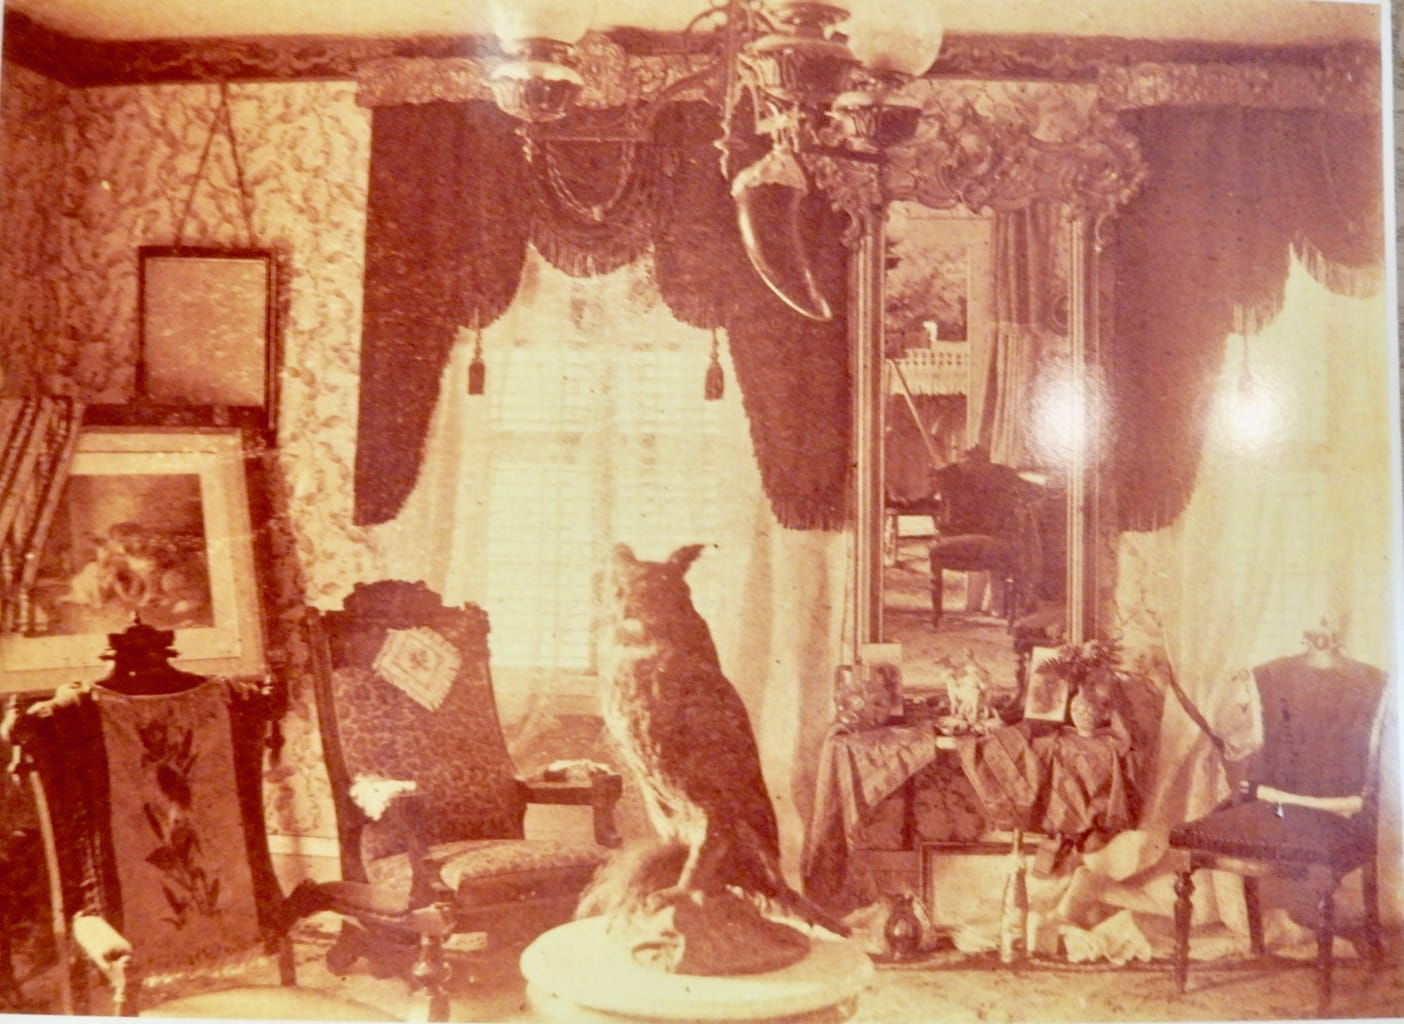 Photo of Matilda Gage parlor by L. Frank Baum Fayetteville NY